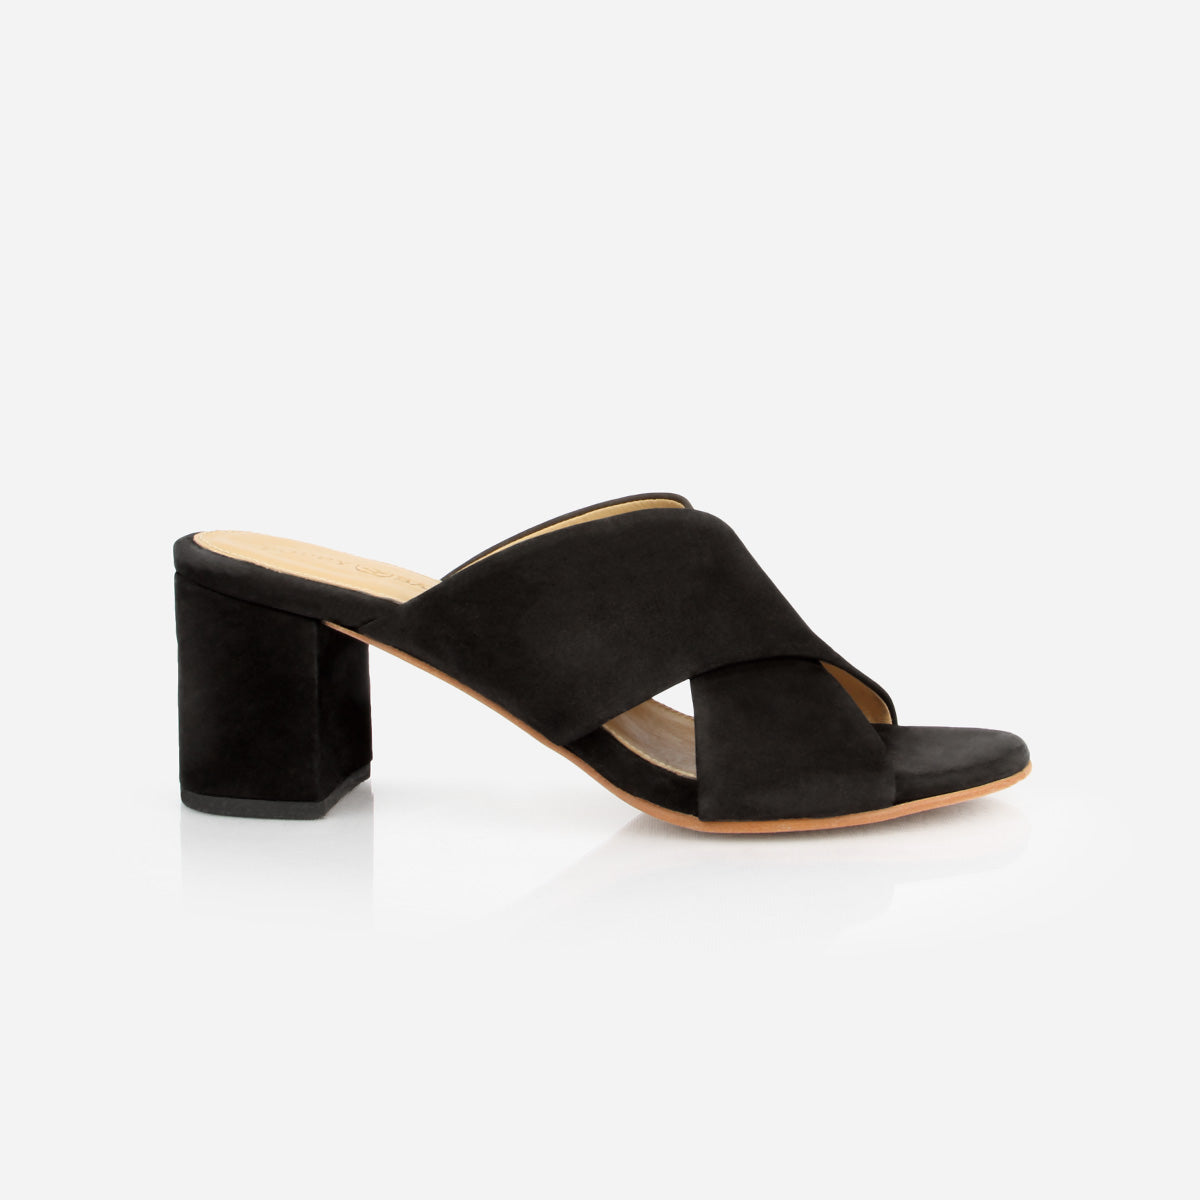 The Niagara Cross Mule Heel Sandal in Black Nubuck - Poppy Barley